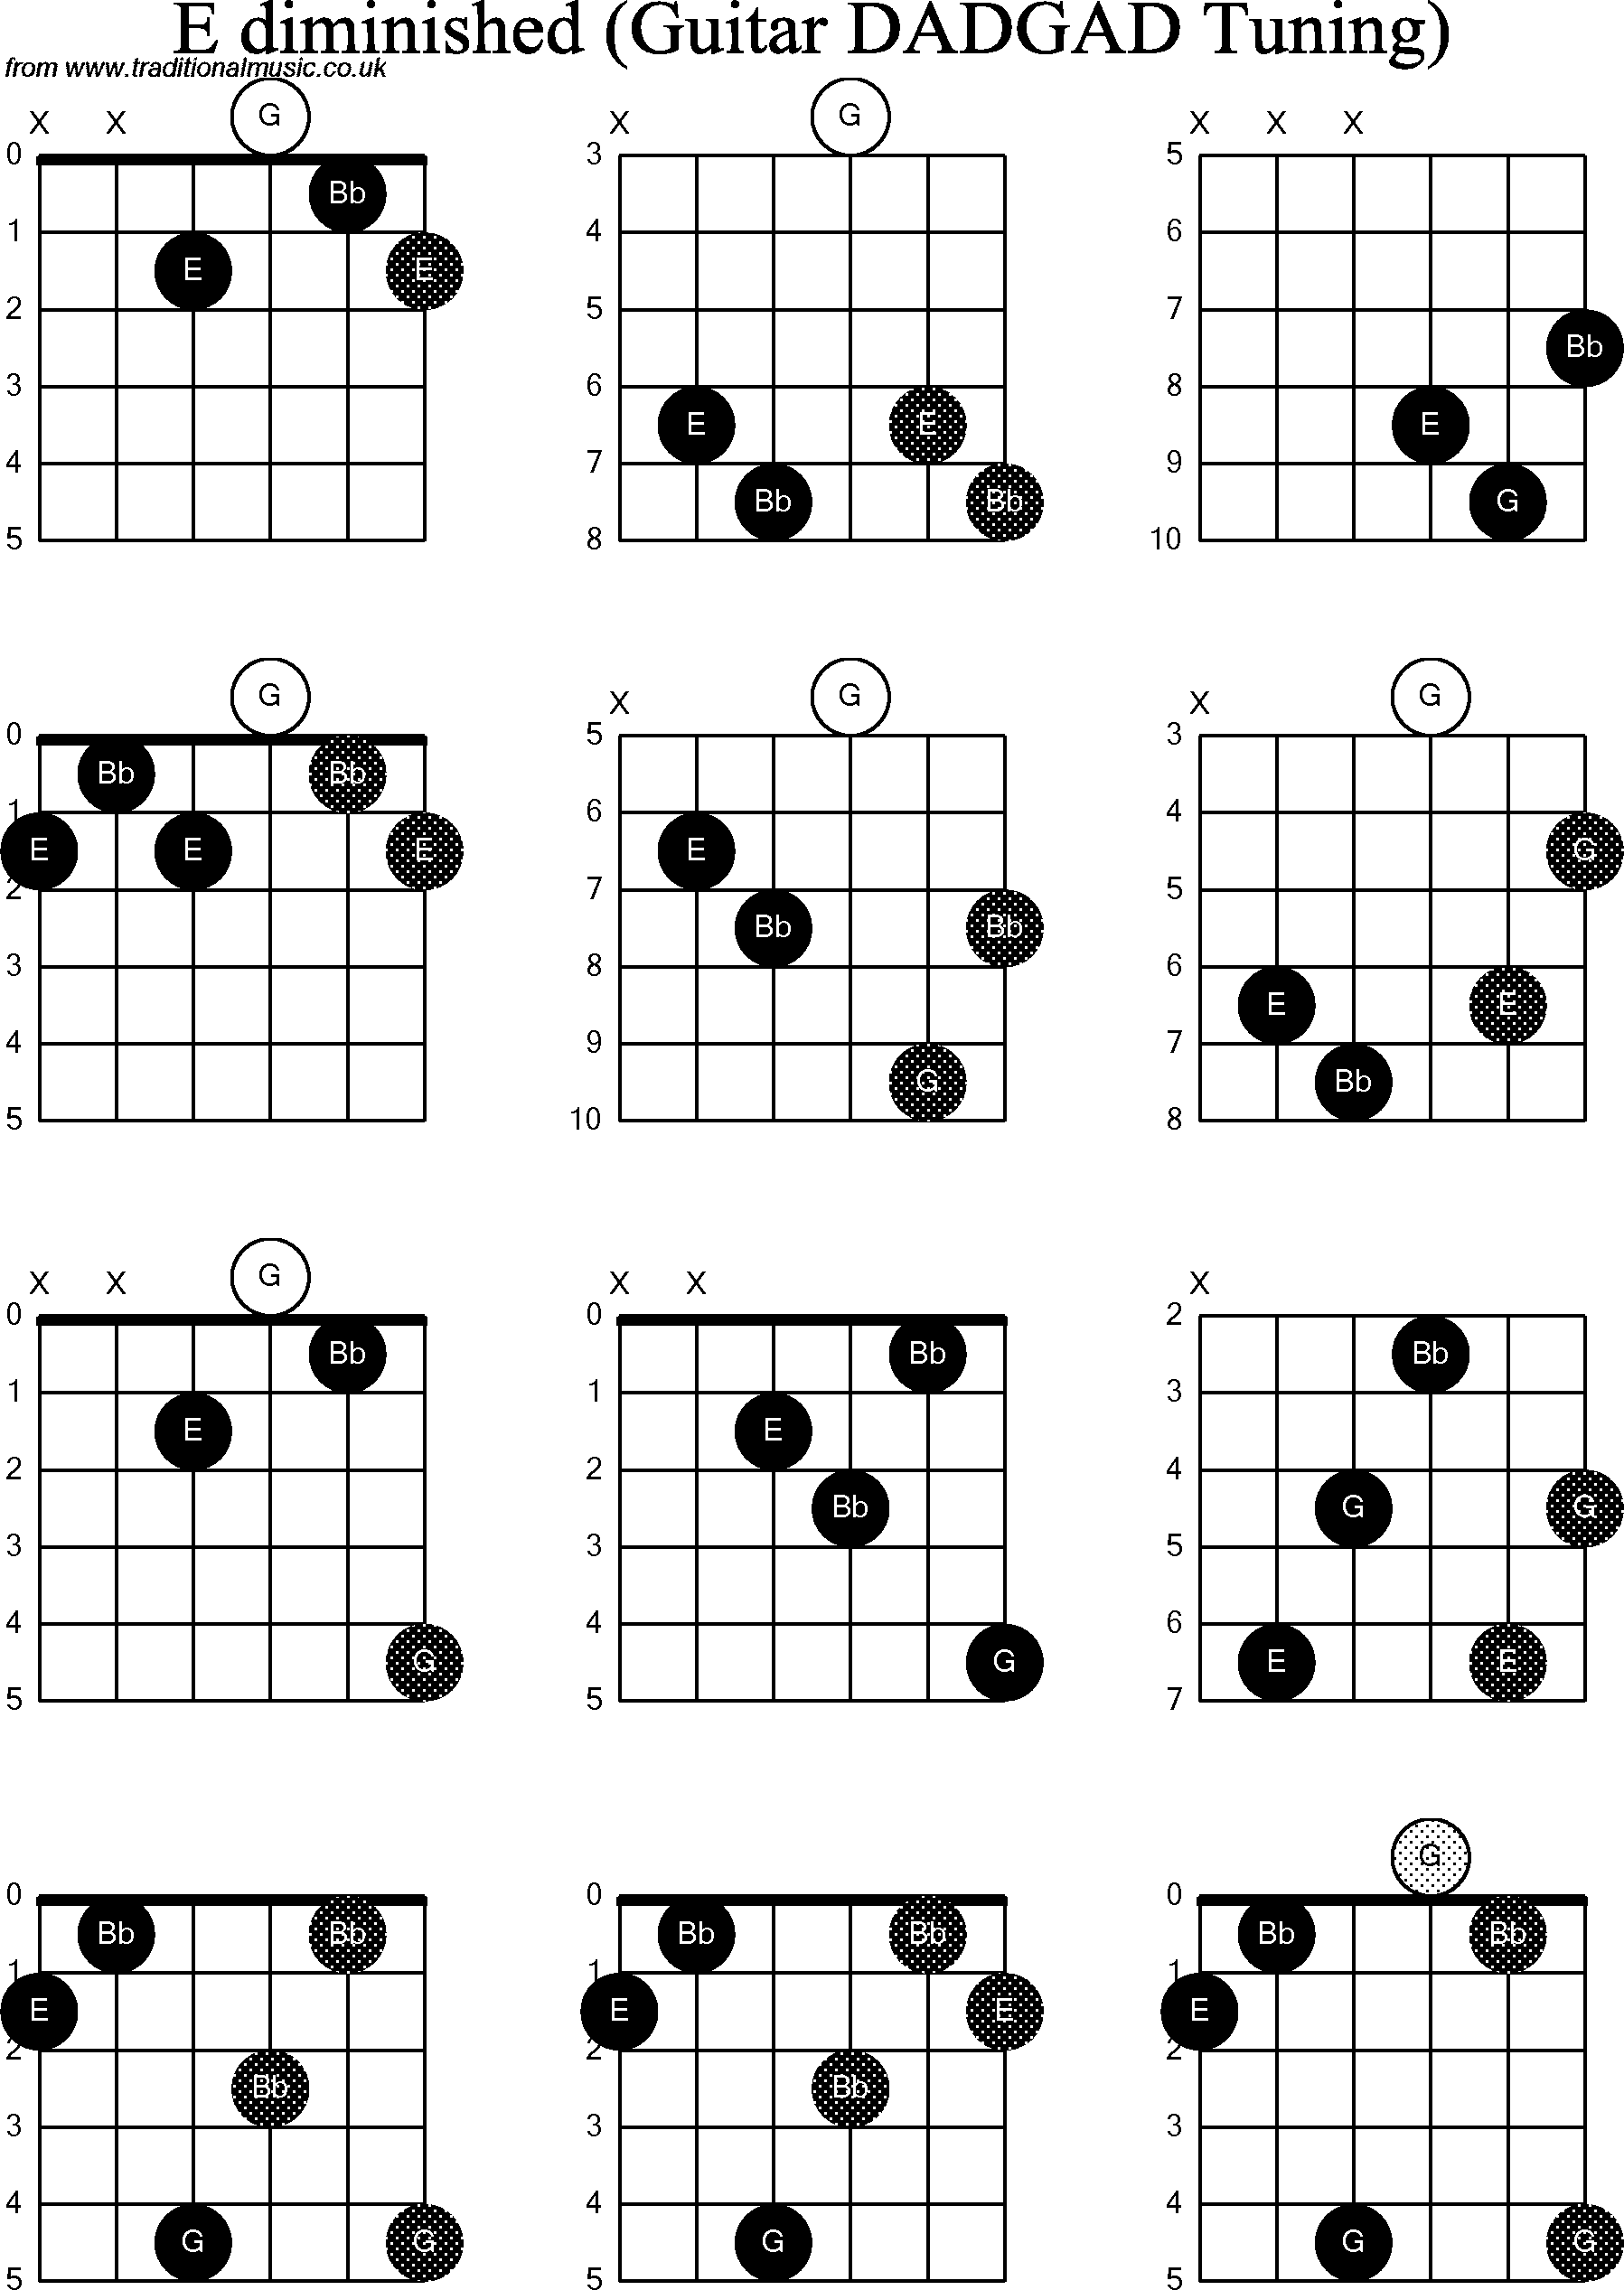 Chord Diagrams D Modal Guitar Dadgad E Diminished